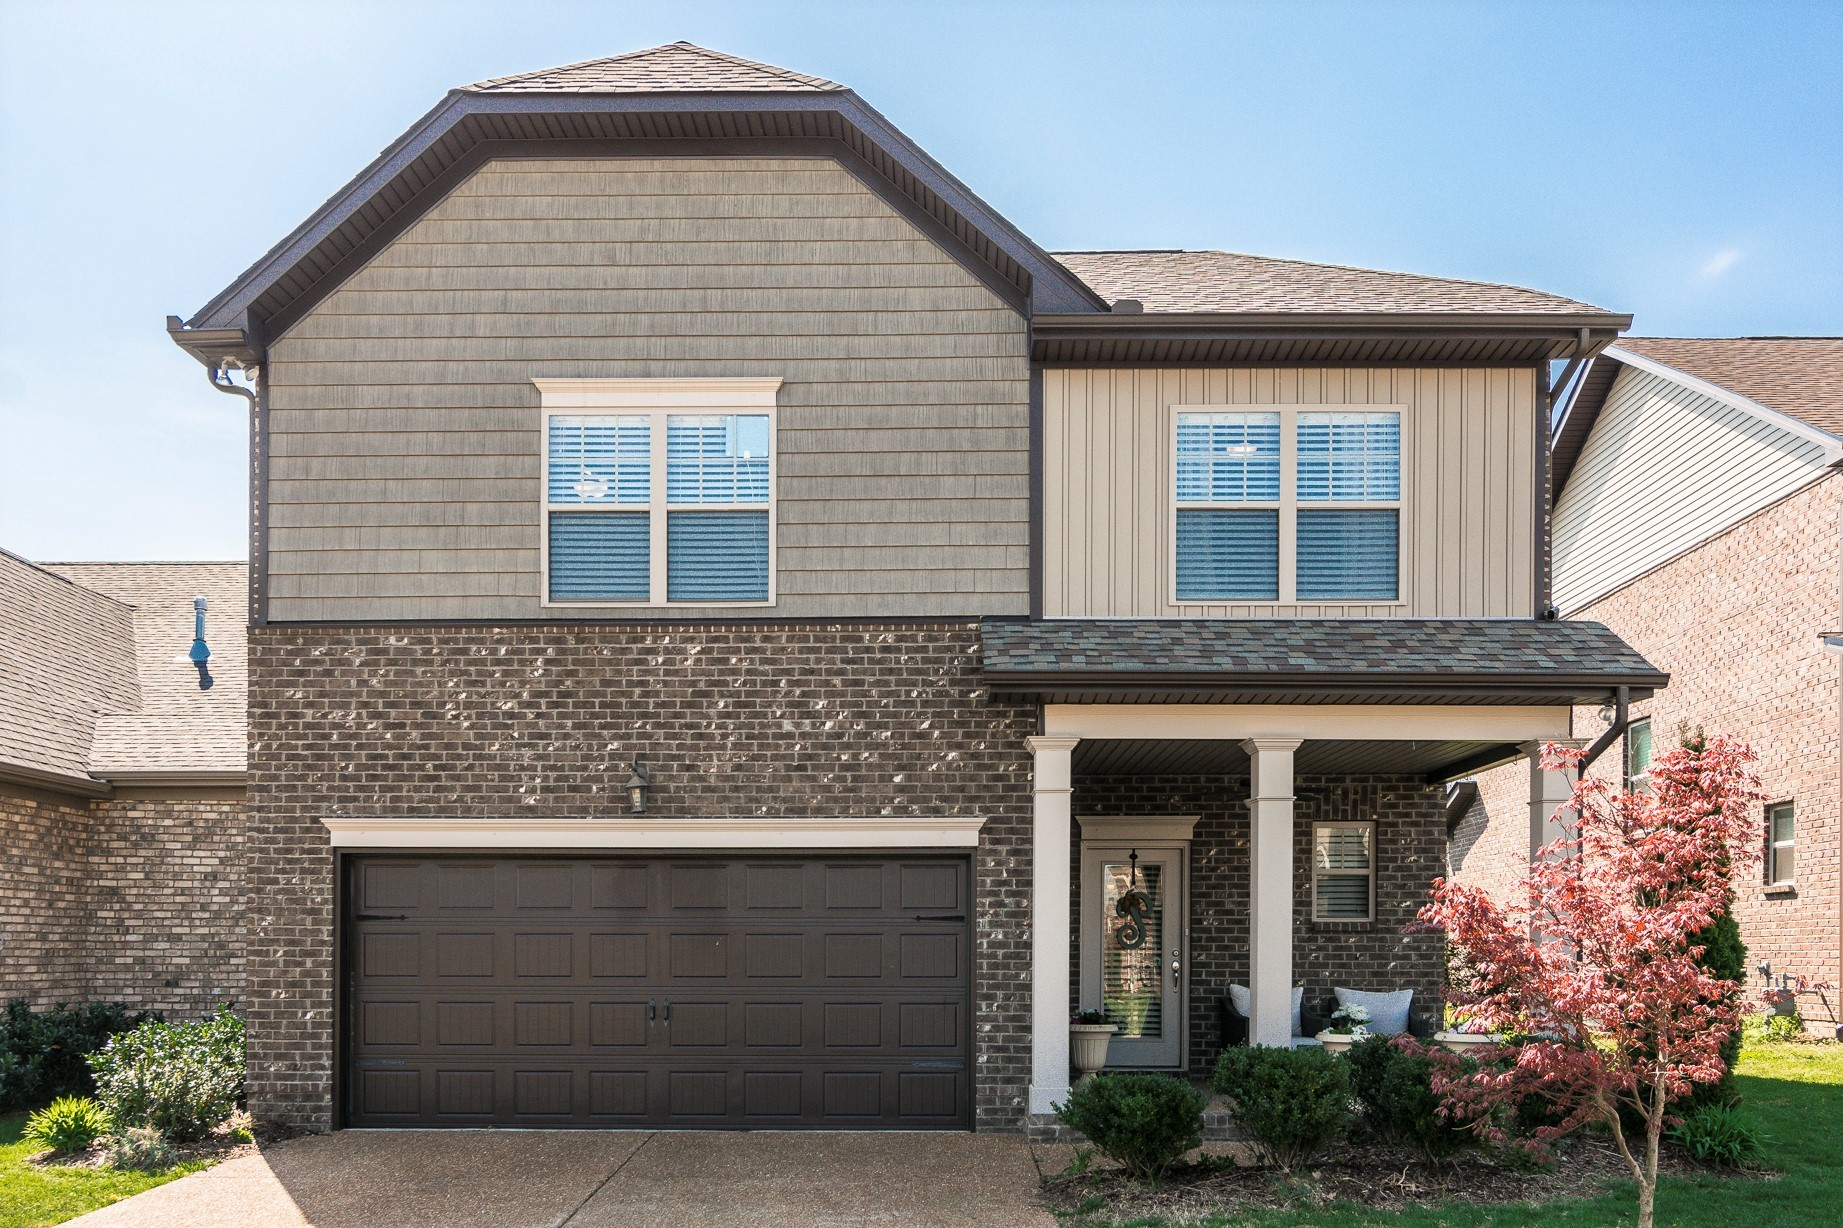 This beautiful home will go on the market April 9th!  Located in the desirable Saundersville Station neighborhood that is close to schools, shopping, and easy access to the highway. Showings begin April 9th.